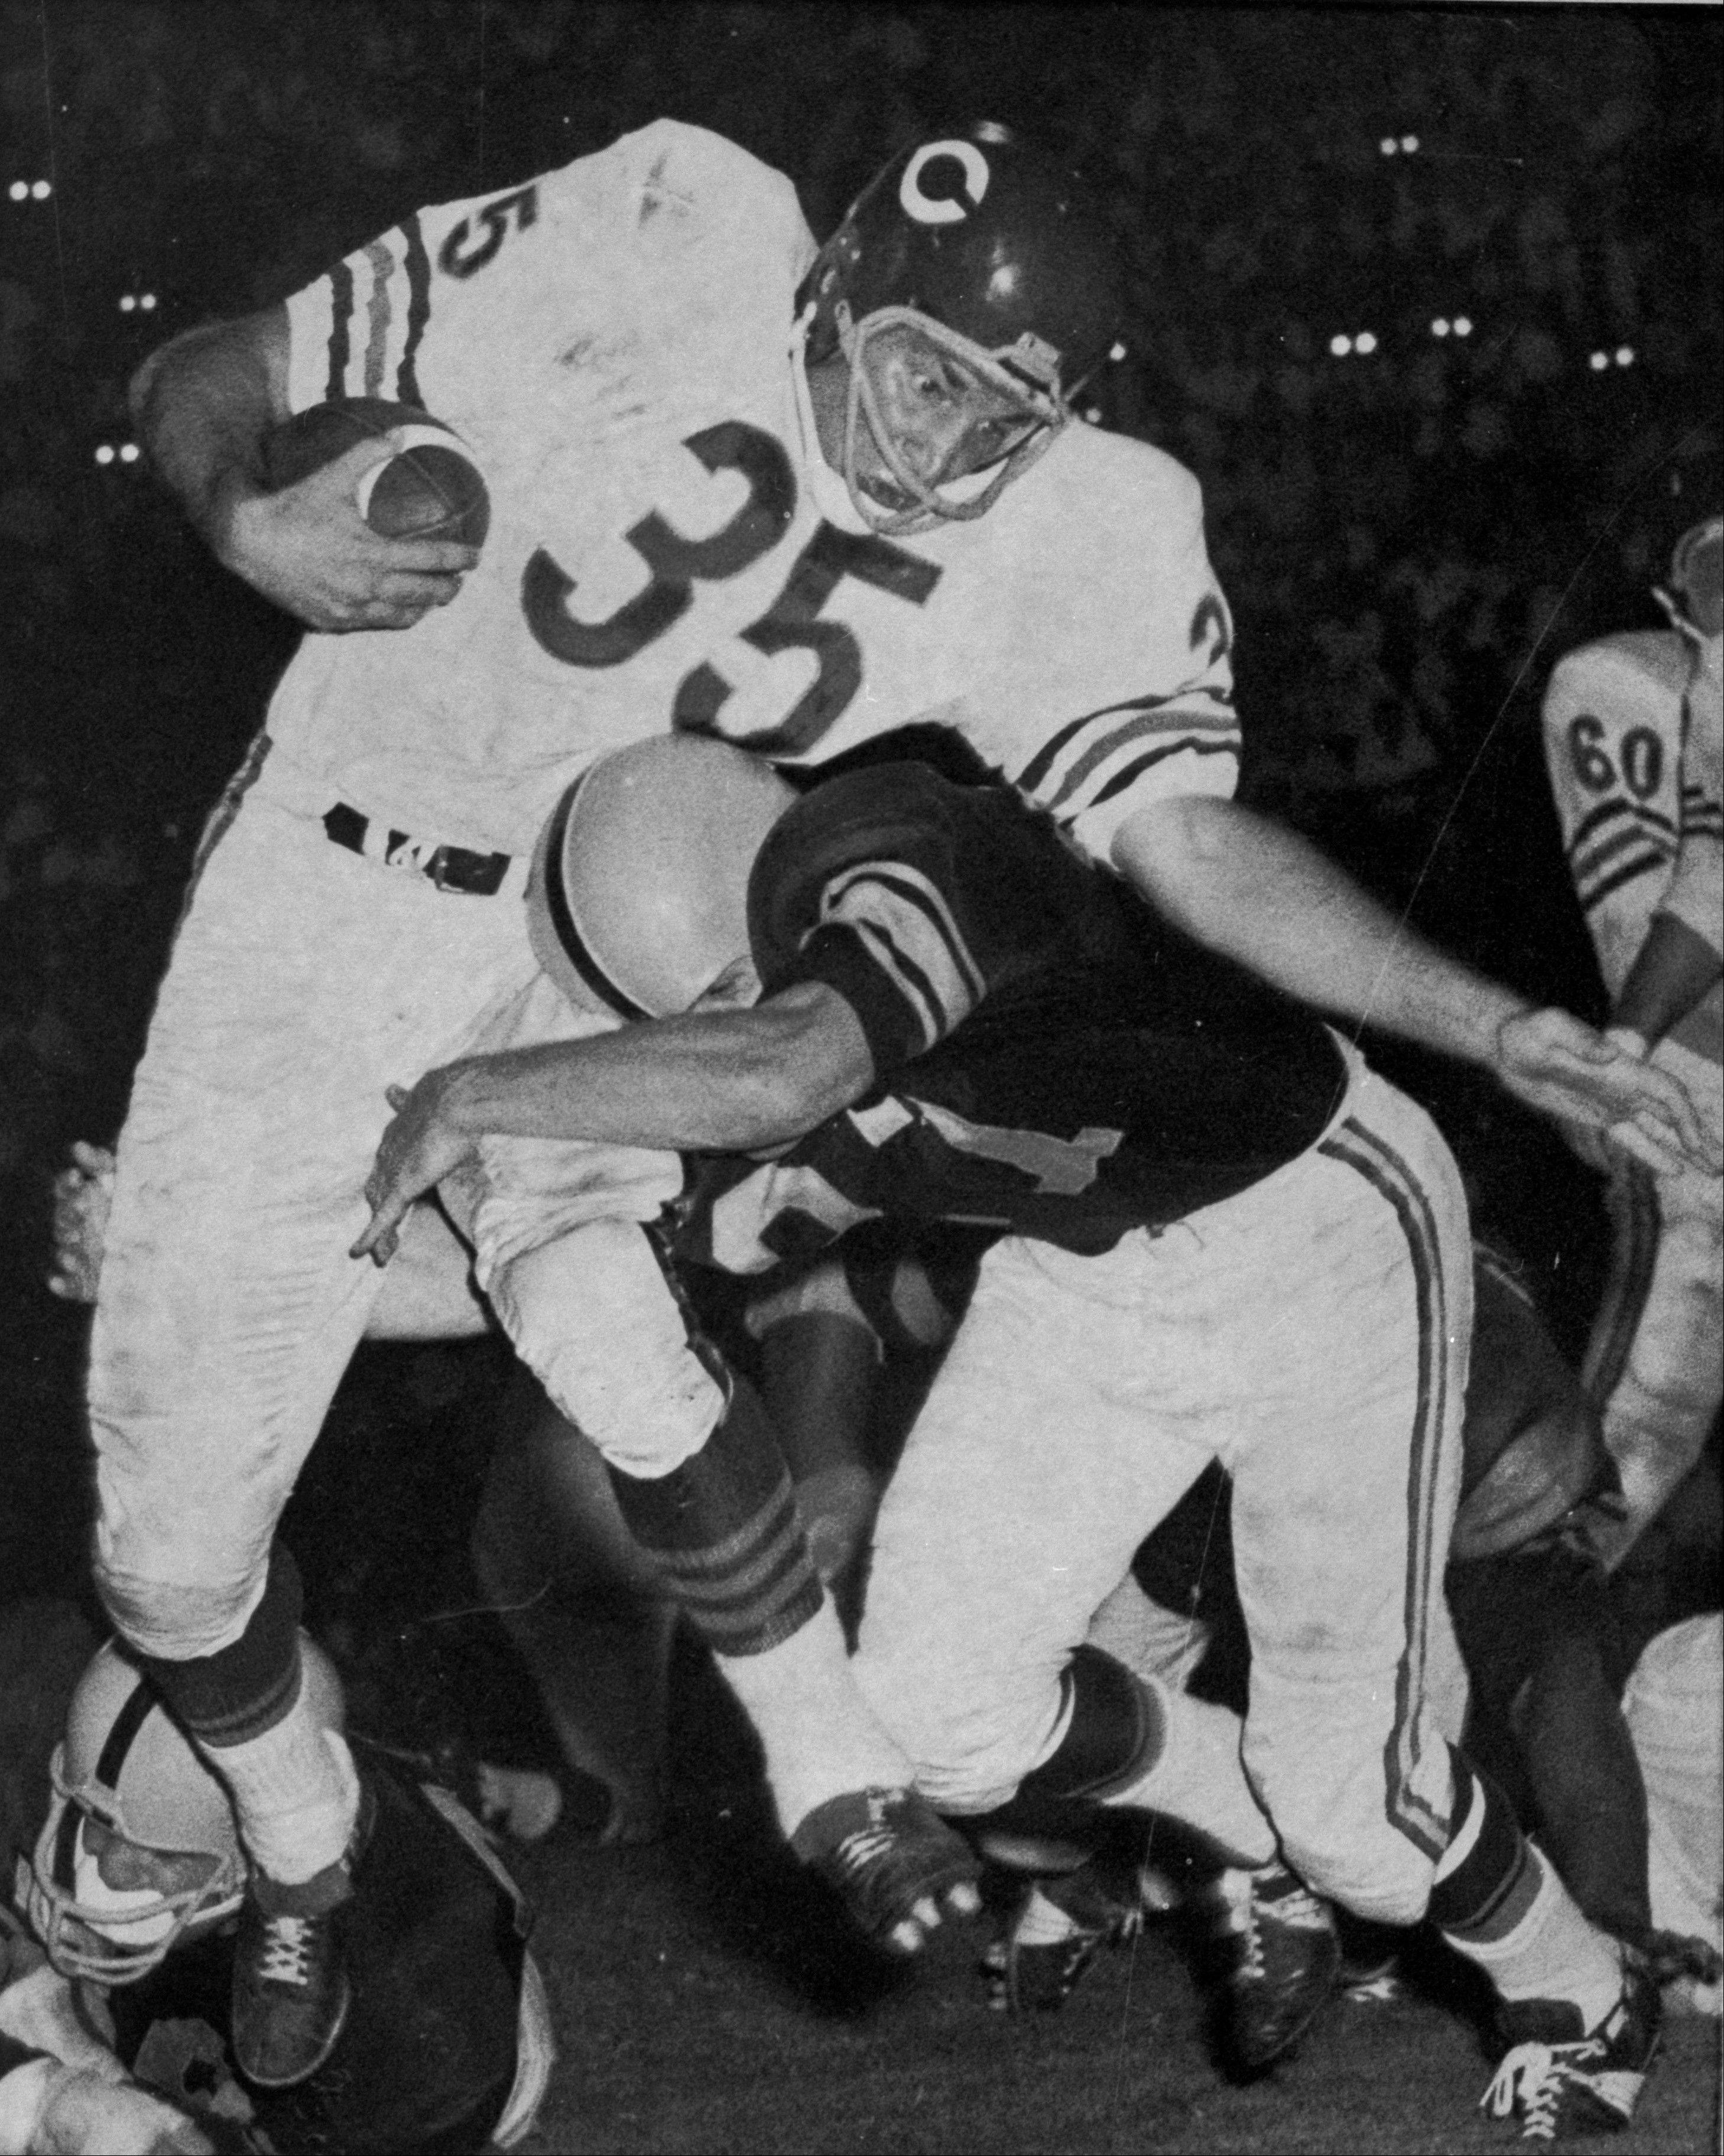 In this Aug. 11, 1962, file photo, Chicago Bears' Rick Casares is hit by a Pittsburgh Steelers player during an exhibition NFL football game in Atlanta. Casares, a star running back for the Bears who was once their all-time leading rusher, died at his home in Tampa, Fla., on Friday, Sept. 13, the Bears announced Sunday, Sept. 15, 2013. He was 82.